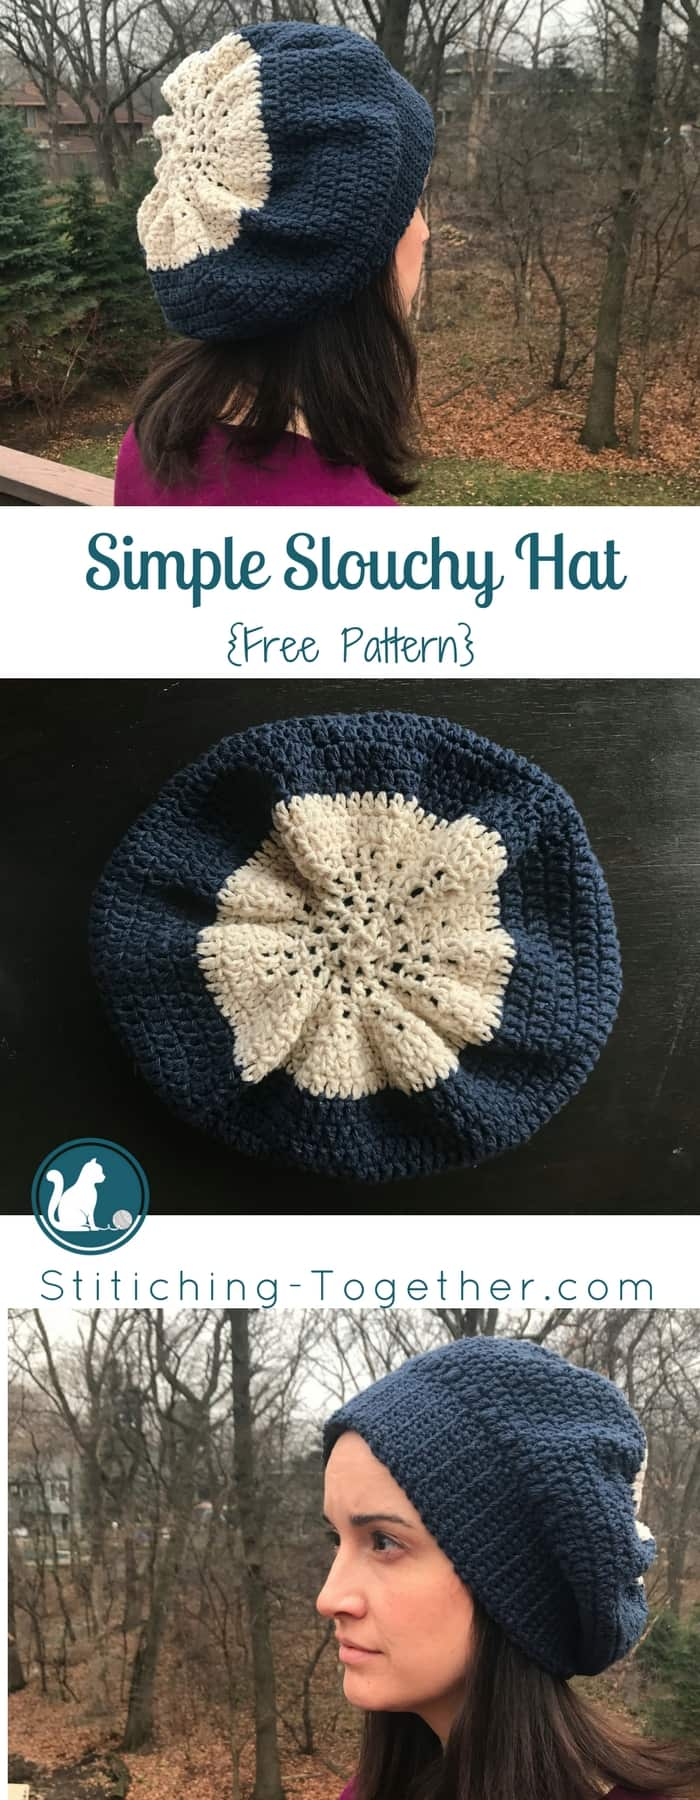 Looking for an easy and free pattern for a crochet slouchy hat? Visit the blog to get the crochet pattern for free and start yours today!